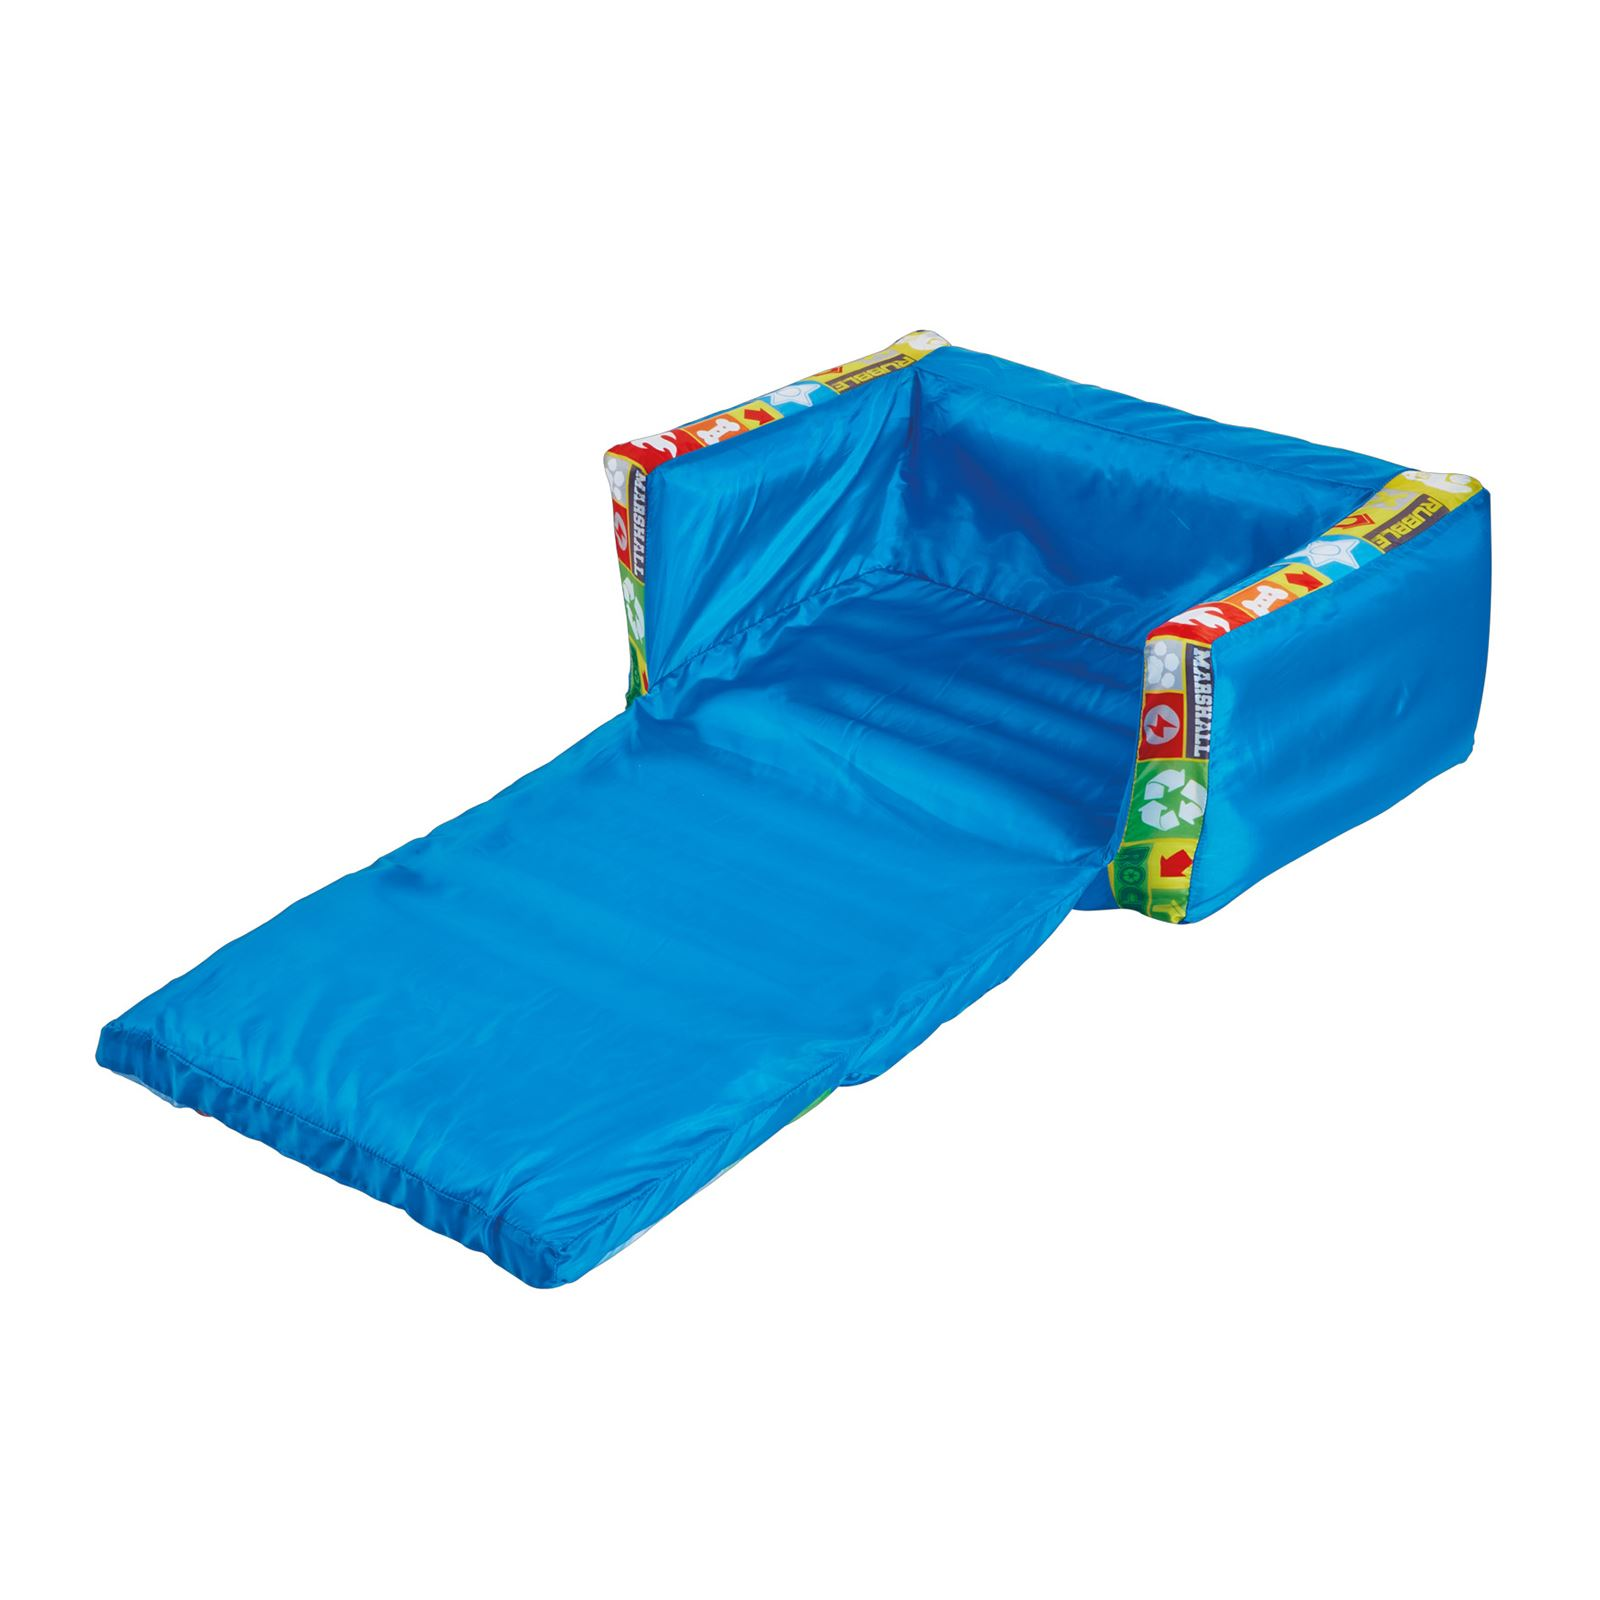 Beau PAW PATROL FLIP OUT SOFA KIDS BLUE LOUNGER SEAT EXTENDS FREE P+P  5013138657669 | EBay